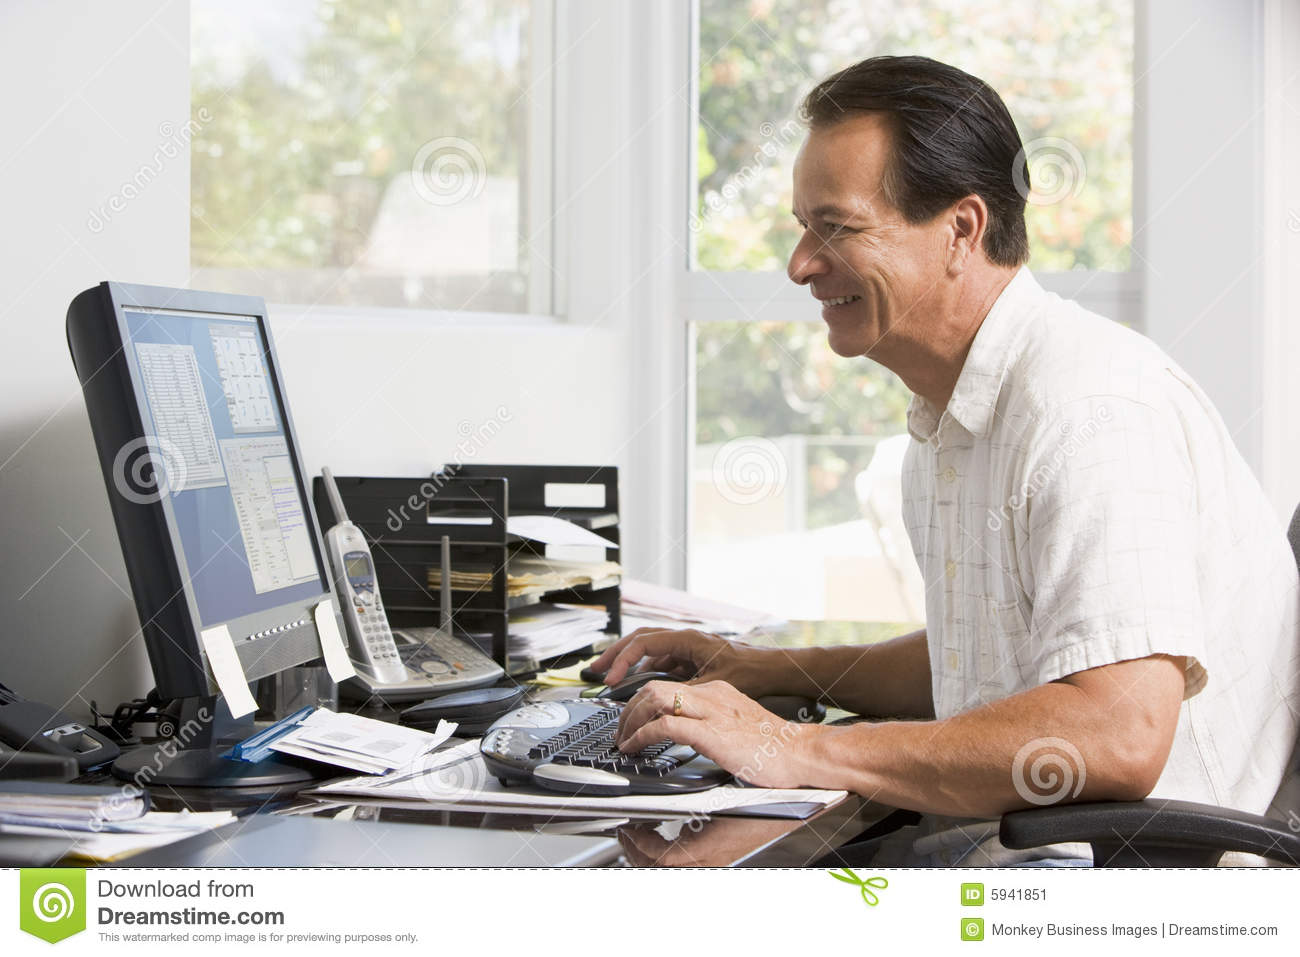 Man In Home Office At Computer Smiling Stock Image - Image of seated ...